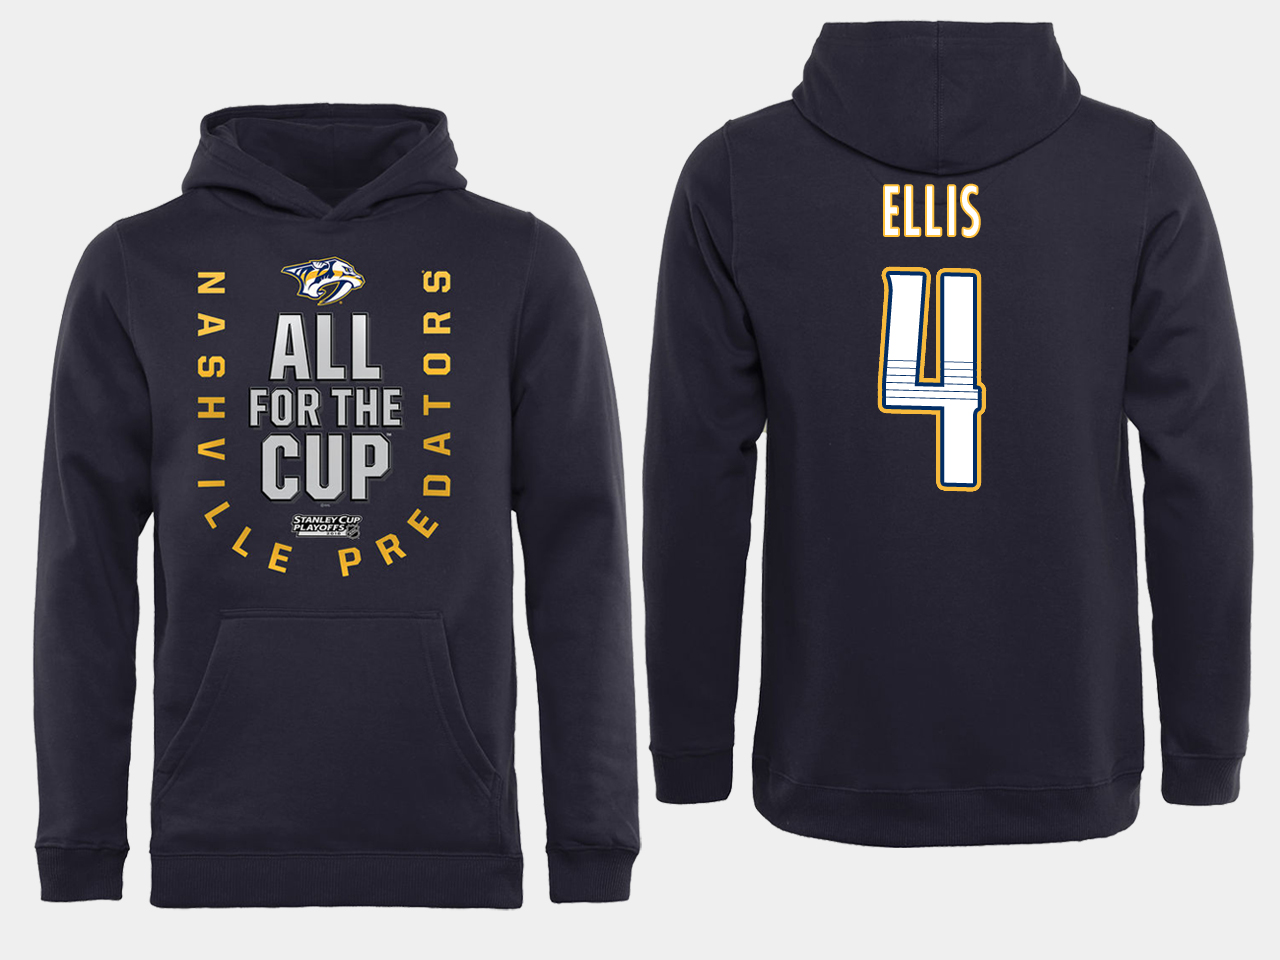 Men NHL Adidas Nashville Predators 4 Ellis black ALL for the Cup hoodie